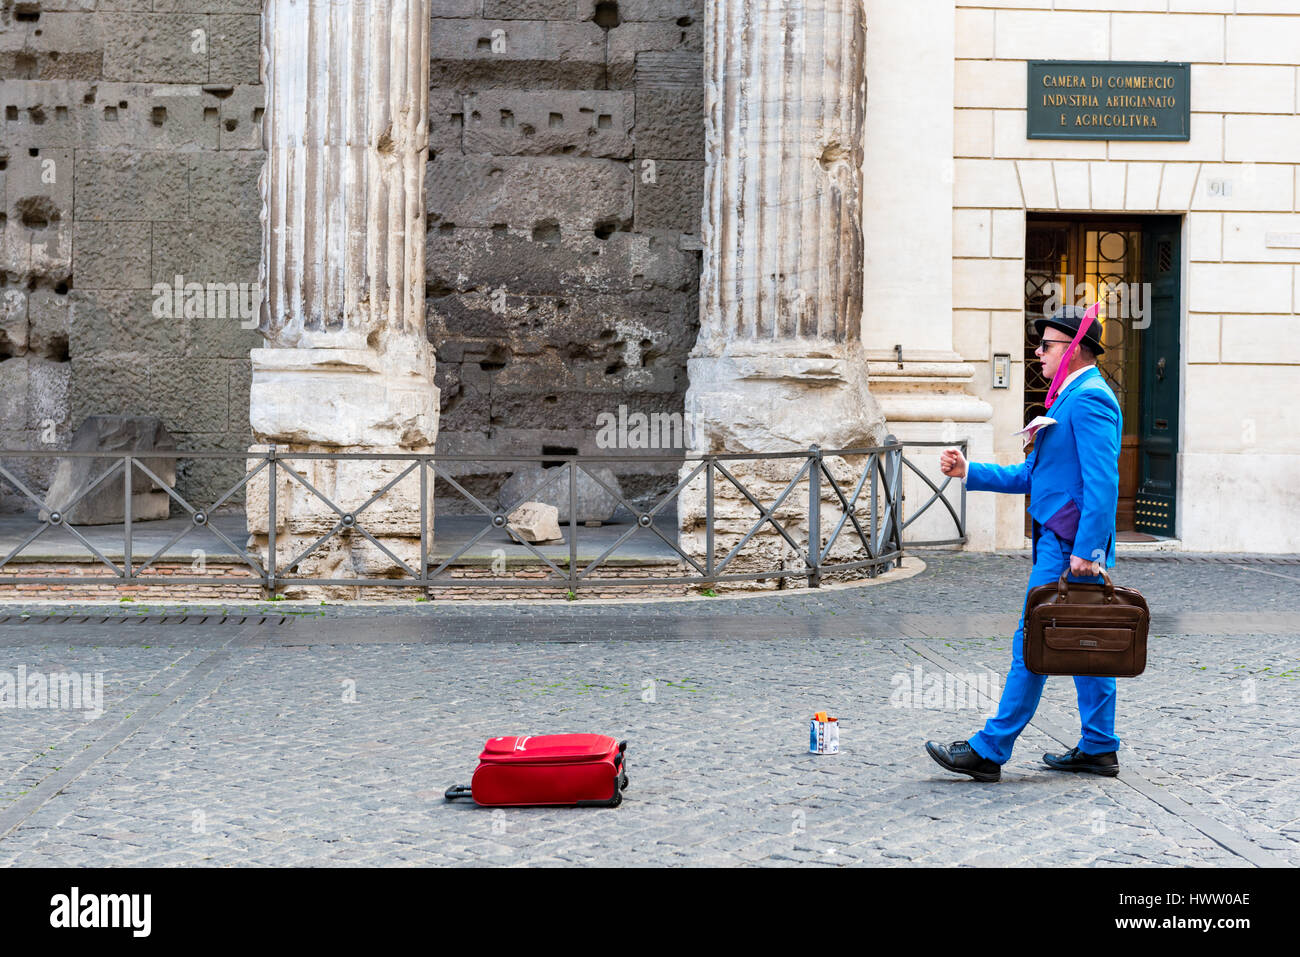 Rome, Italy - February 3, 2017:Mime artist performing in Piazza di Pietra,  on February 3, 2017 in Rome, Italy - Stock Image